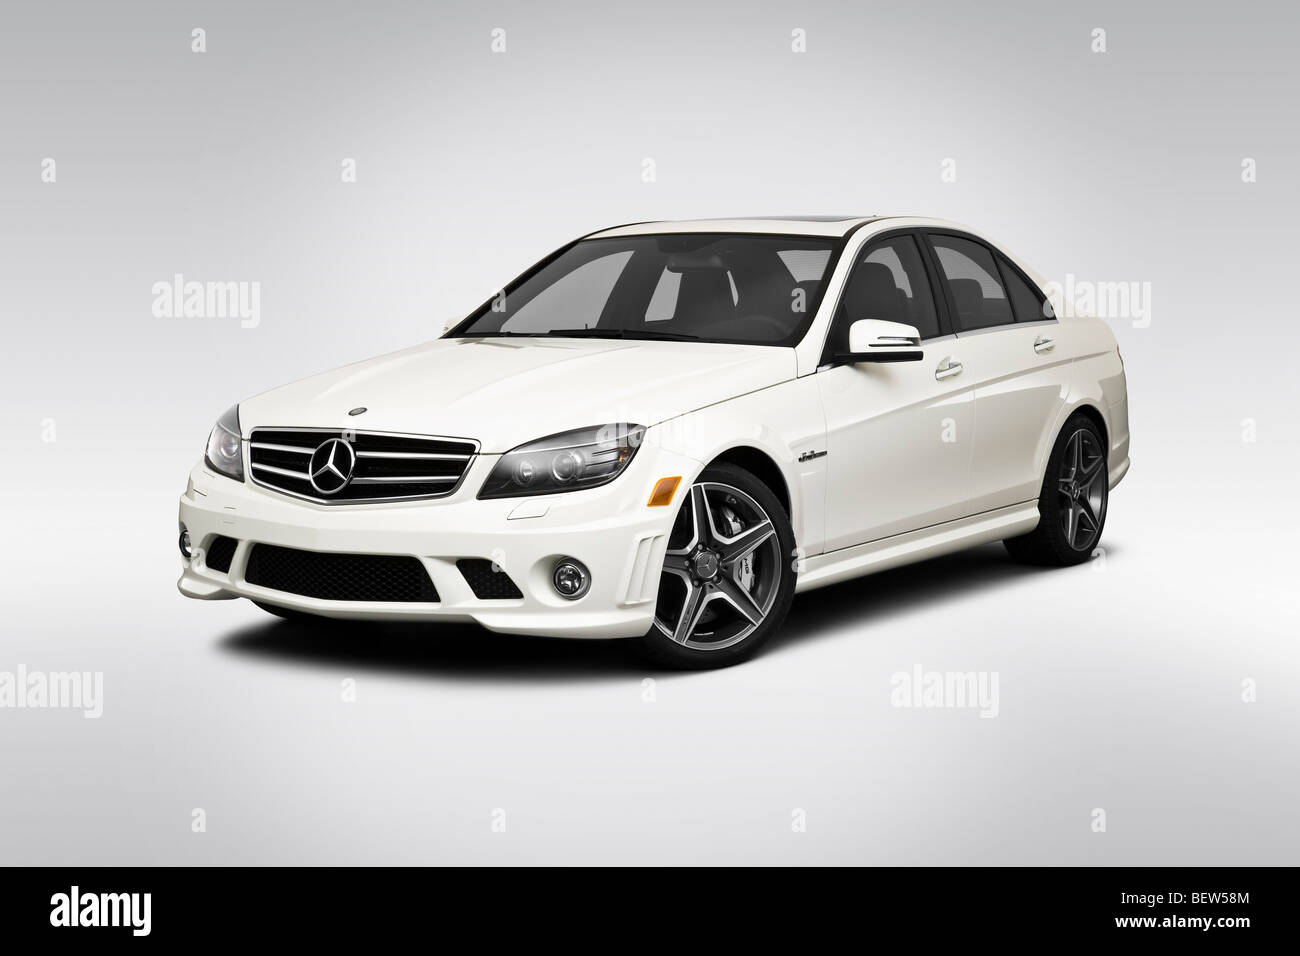 2010 mercedes benz c class c63 amg in white front angle for Mercedes benz c class white